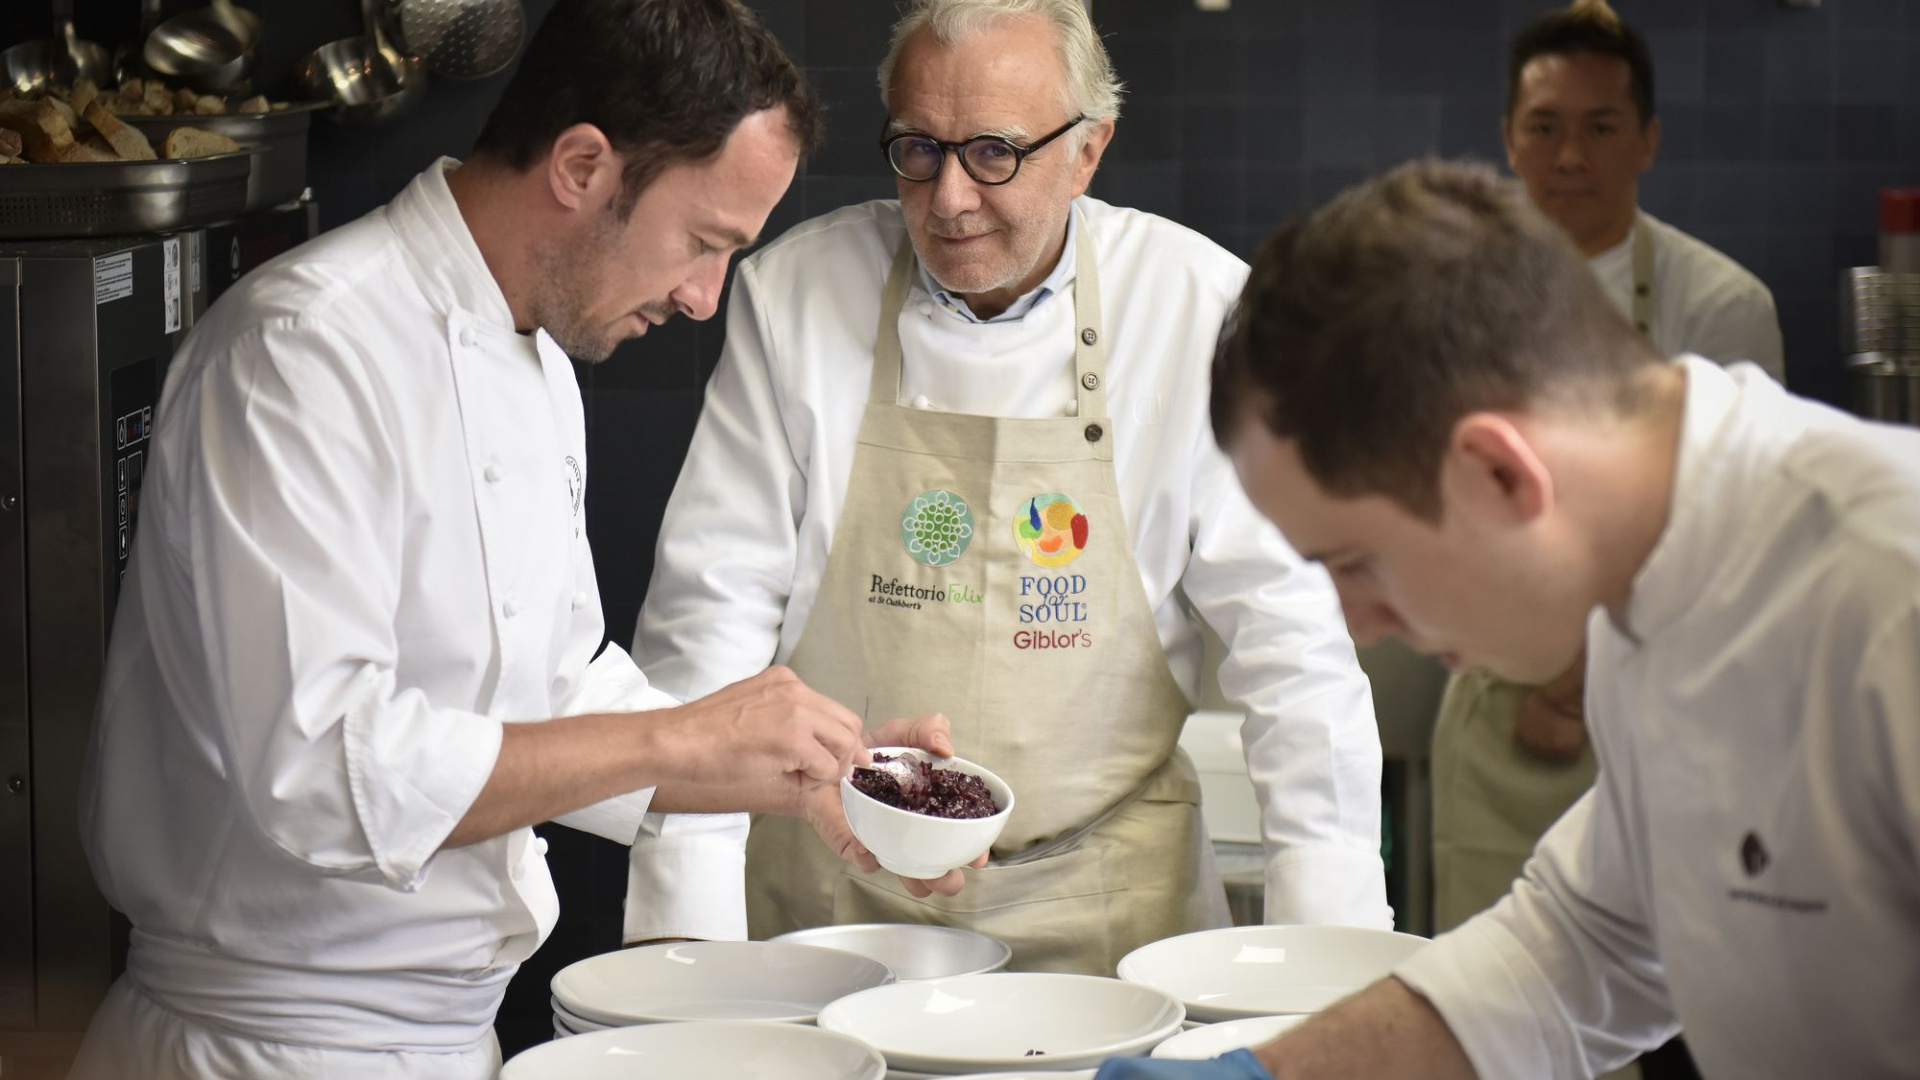 Alain Ducasse cooking at Massimo Bottura's Food for Soul project